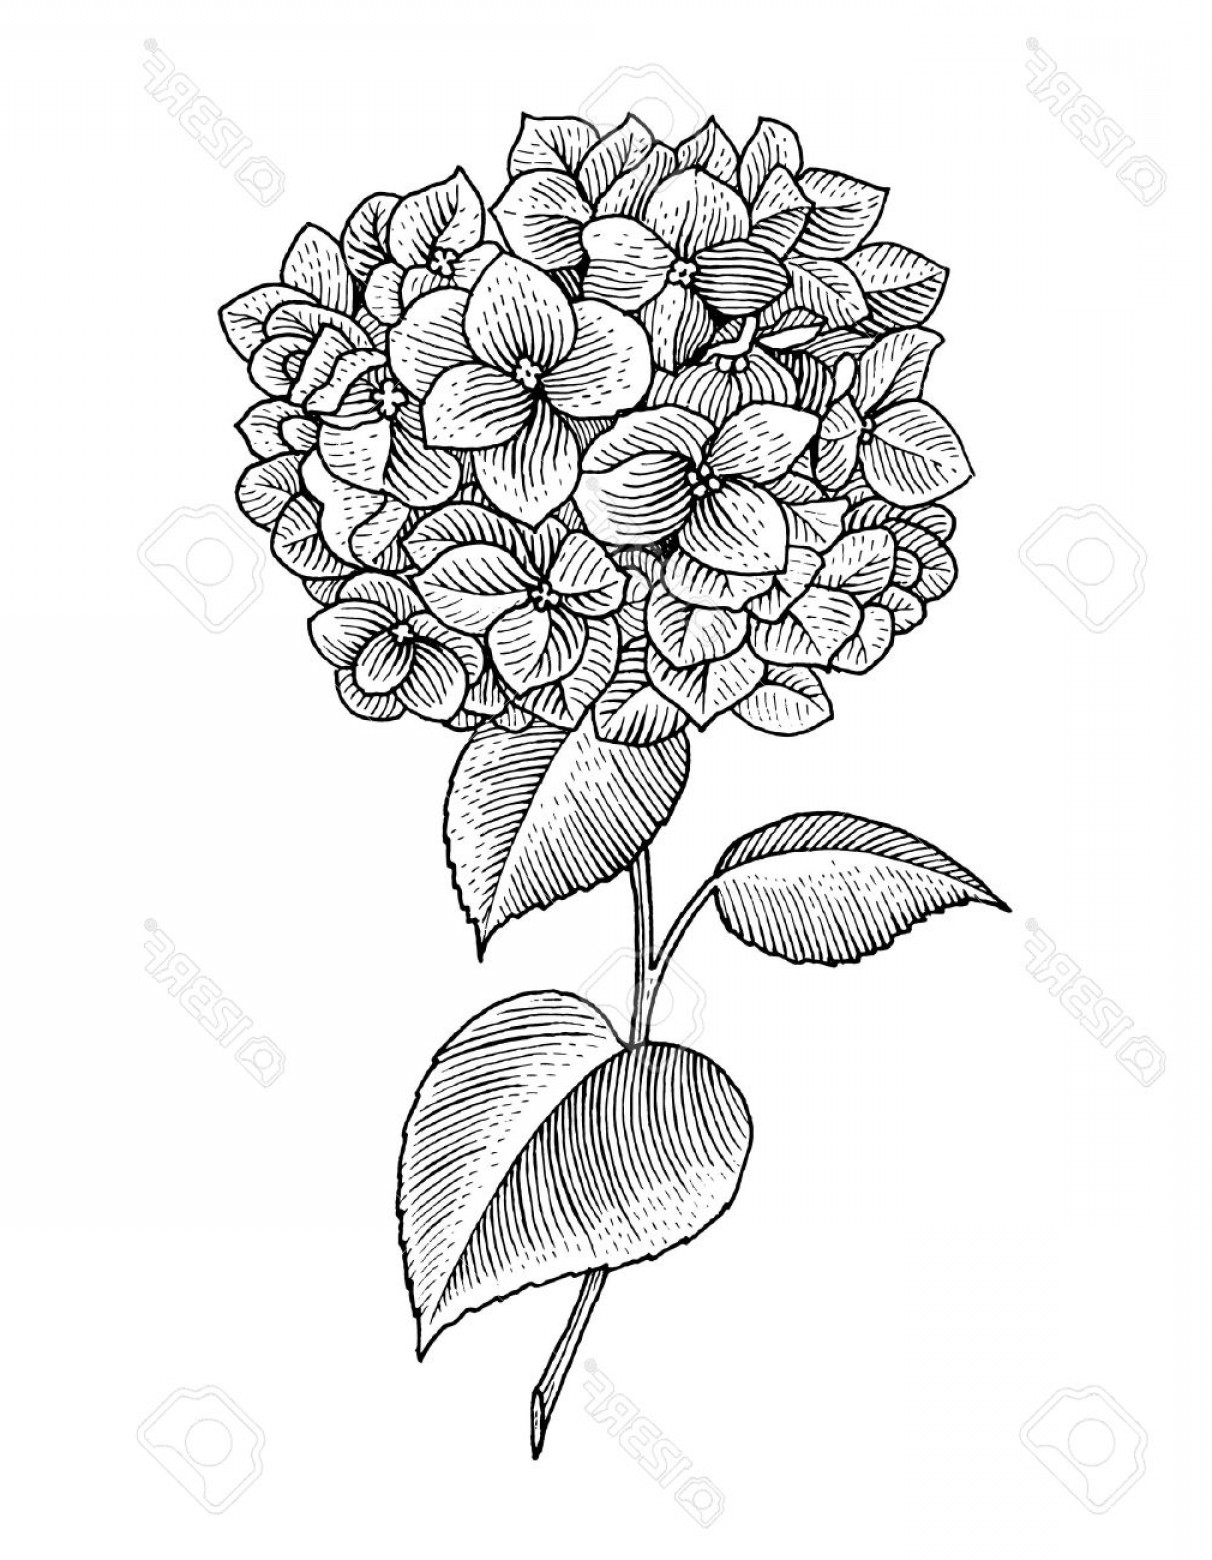 Hydrangea Vector Graphics: Photostock Vector Sprig Of Blooming Hydrangea Black And White Graphics